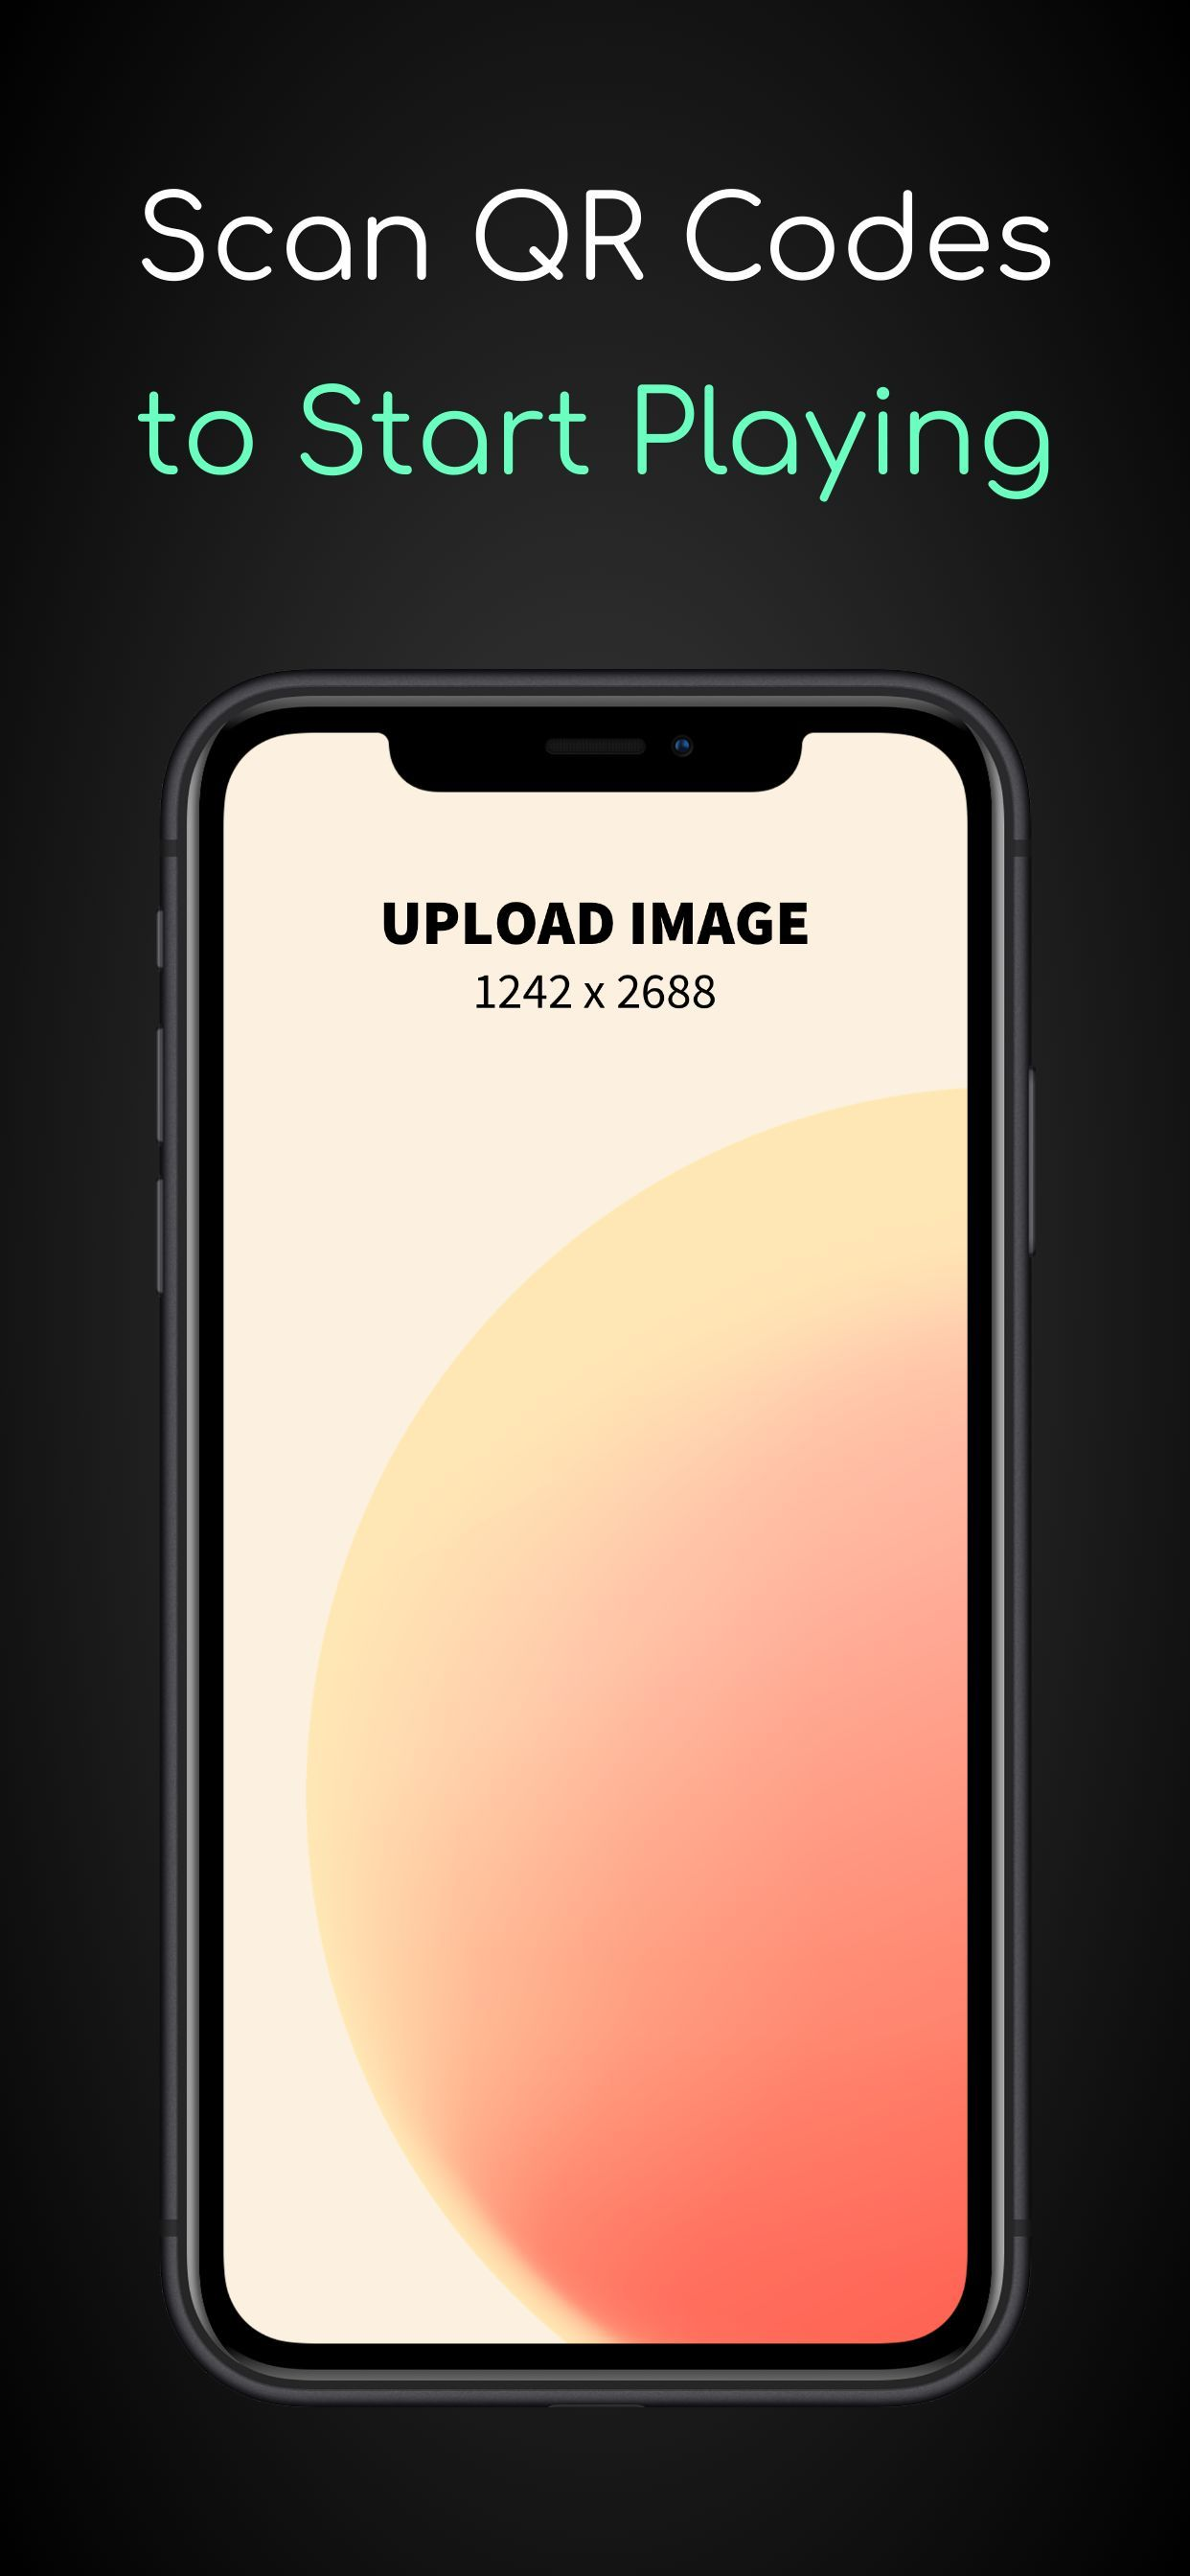 iPhone XS Max Screenshot 22 template. Quickly edit fonts, text, colors, and more for free.